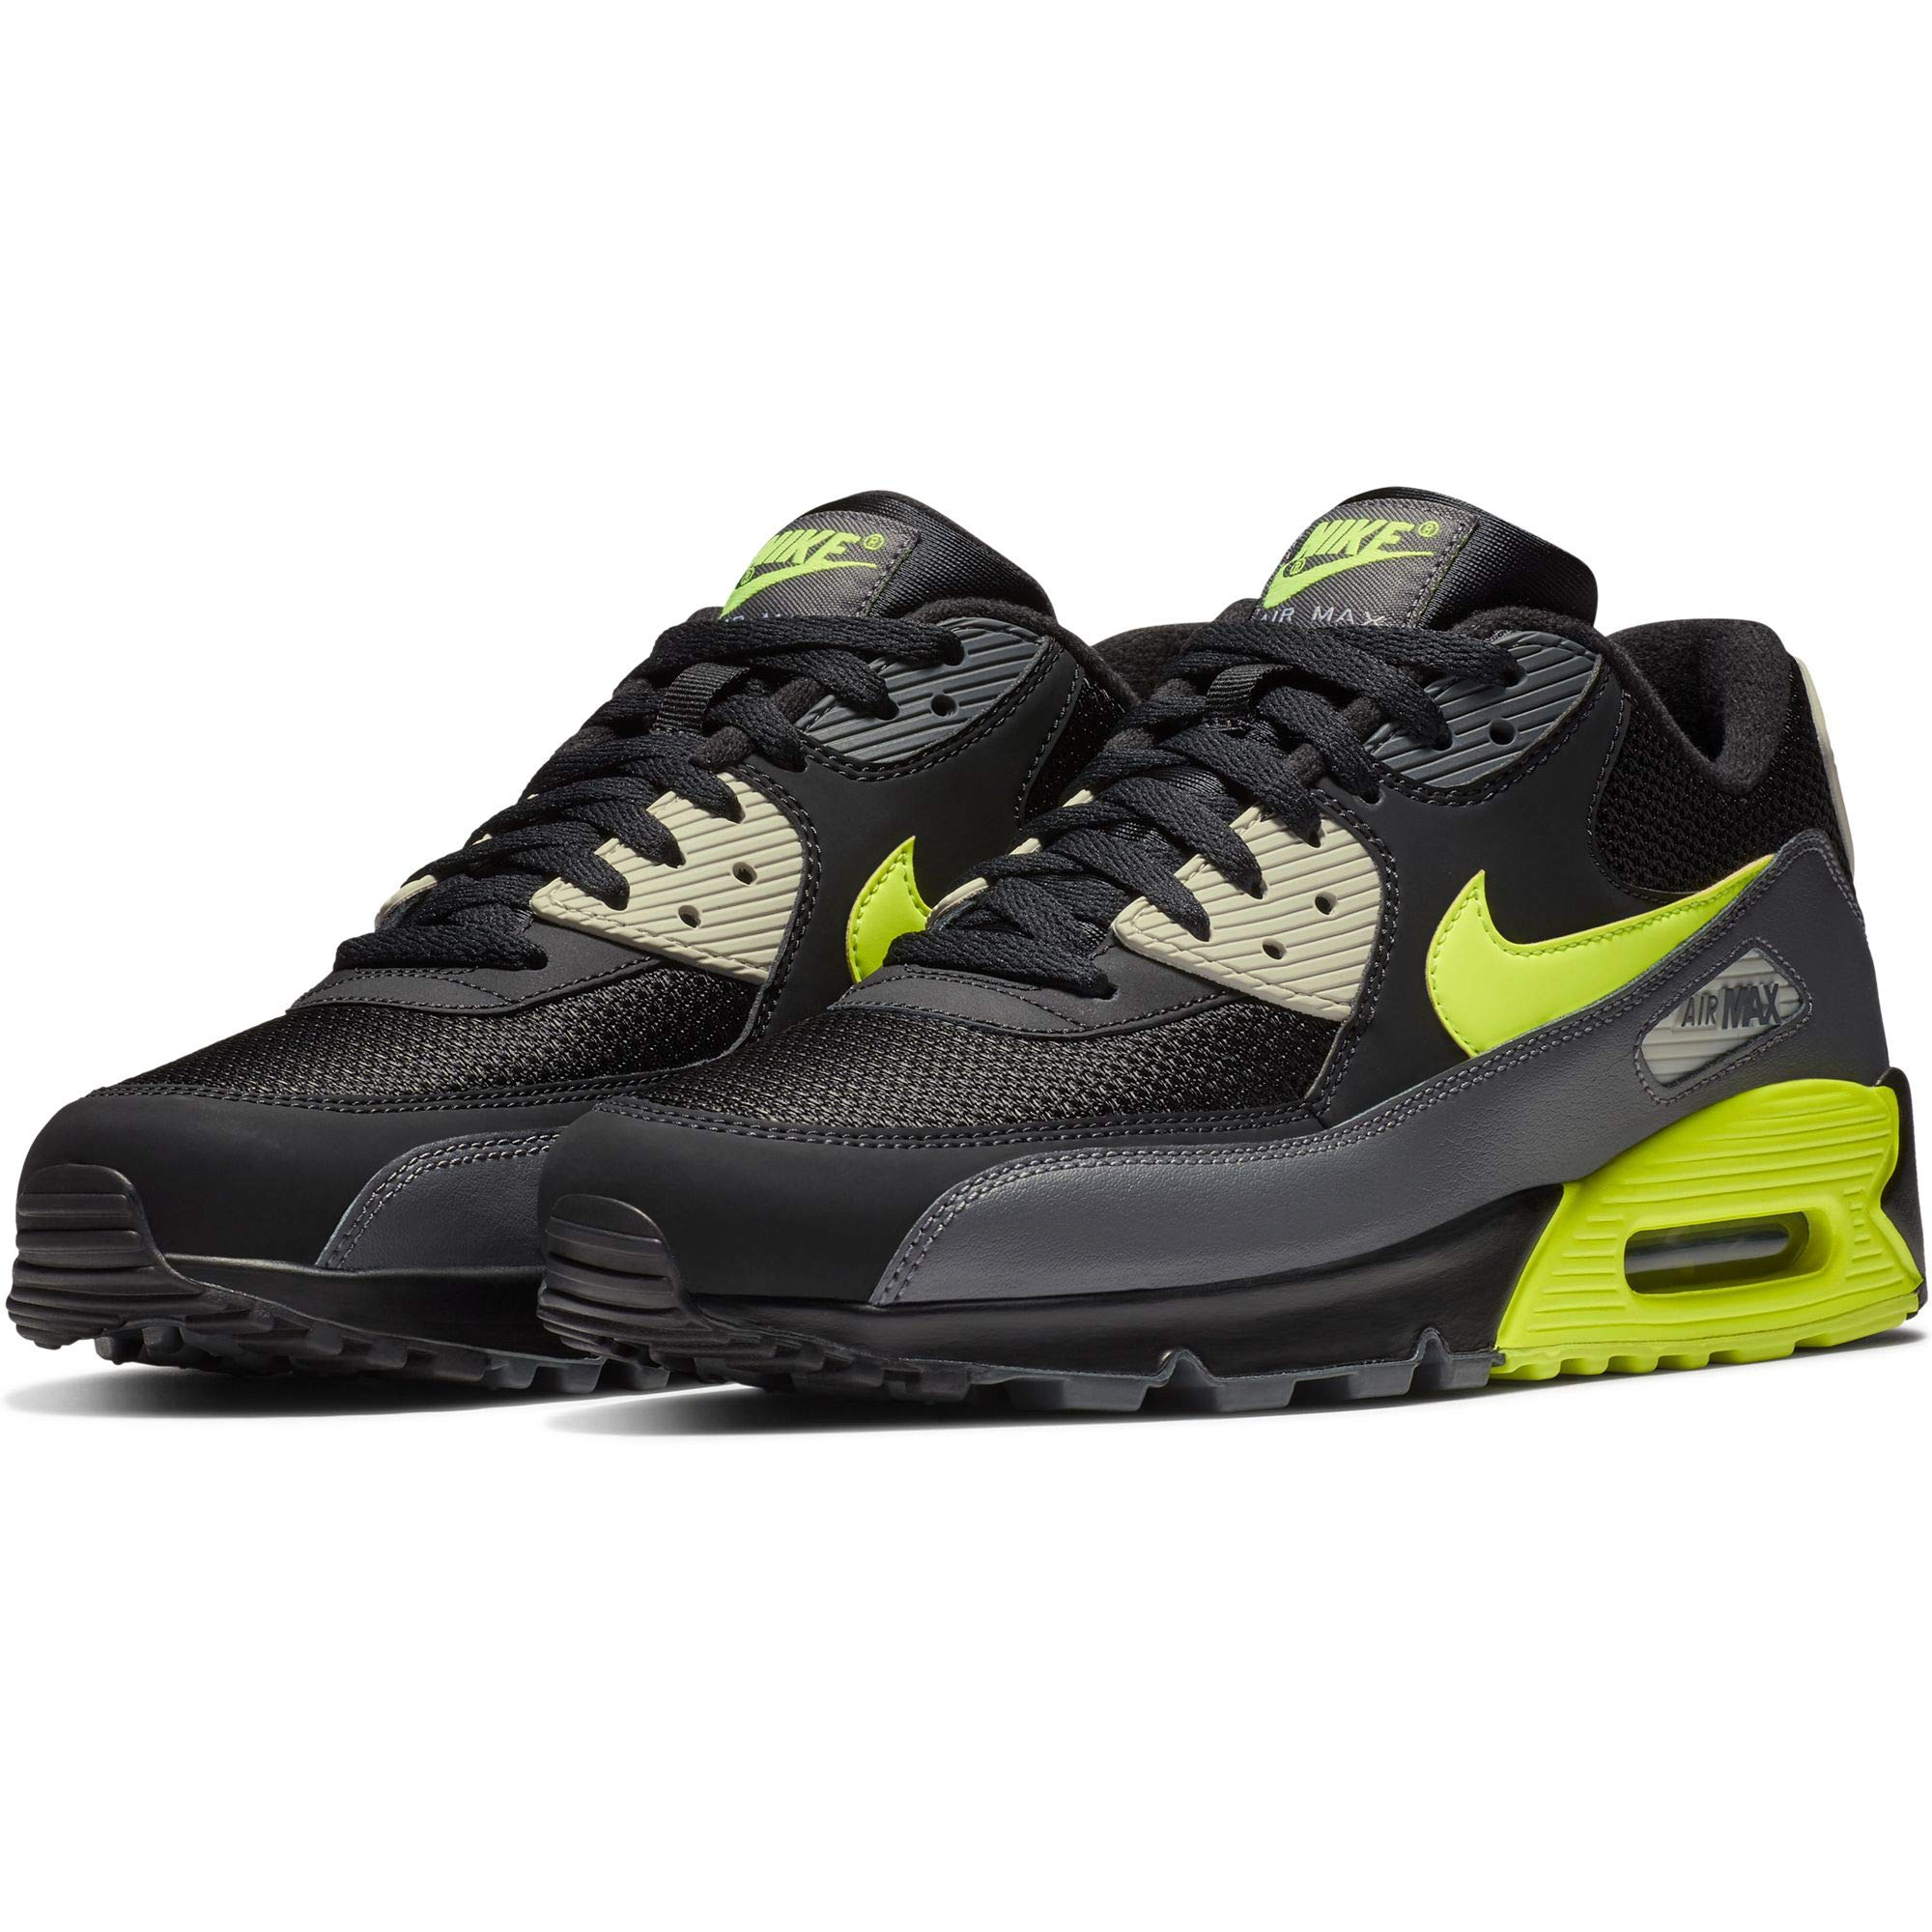 finest selection 689f9 3e72c Galleon - Nike Mens Air Max 90 Essential Running Shoes Dark Grey Volt Black Bone  AJ1285-015 Size 11.5